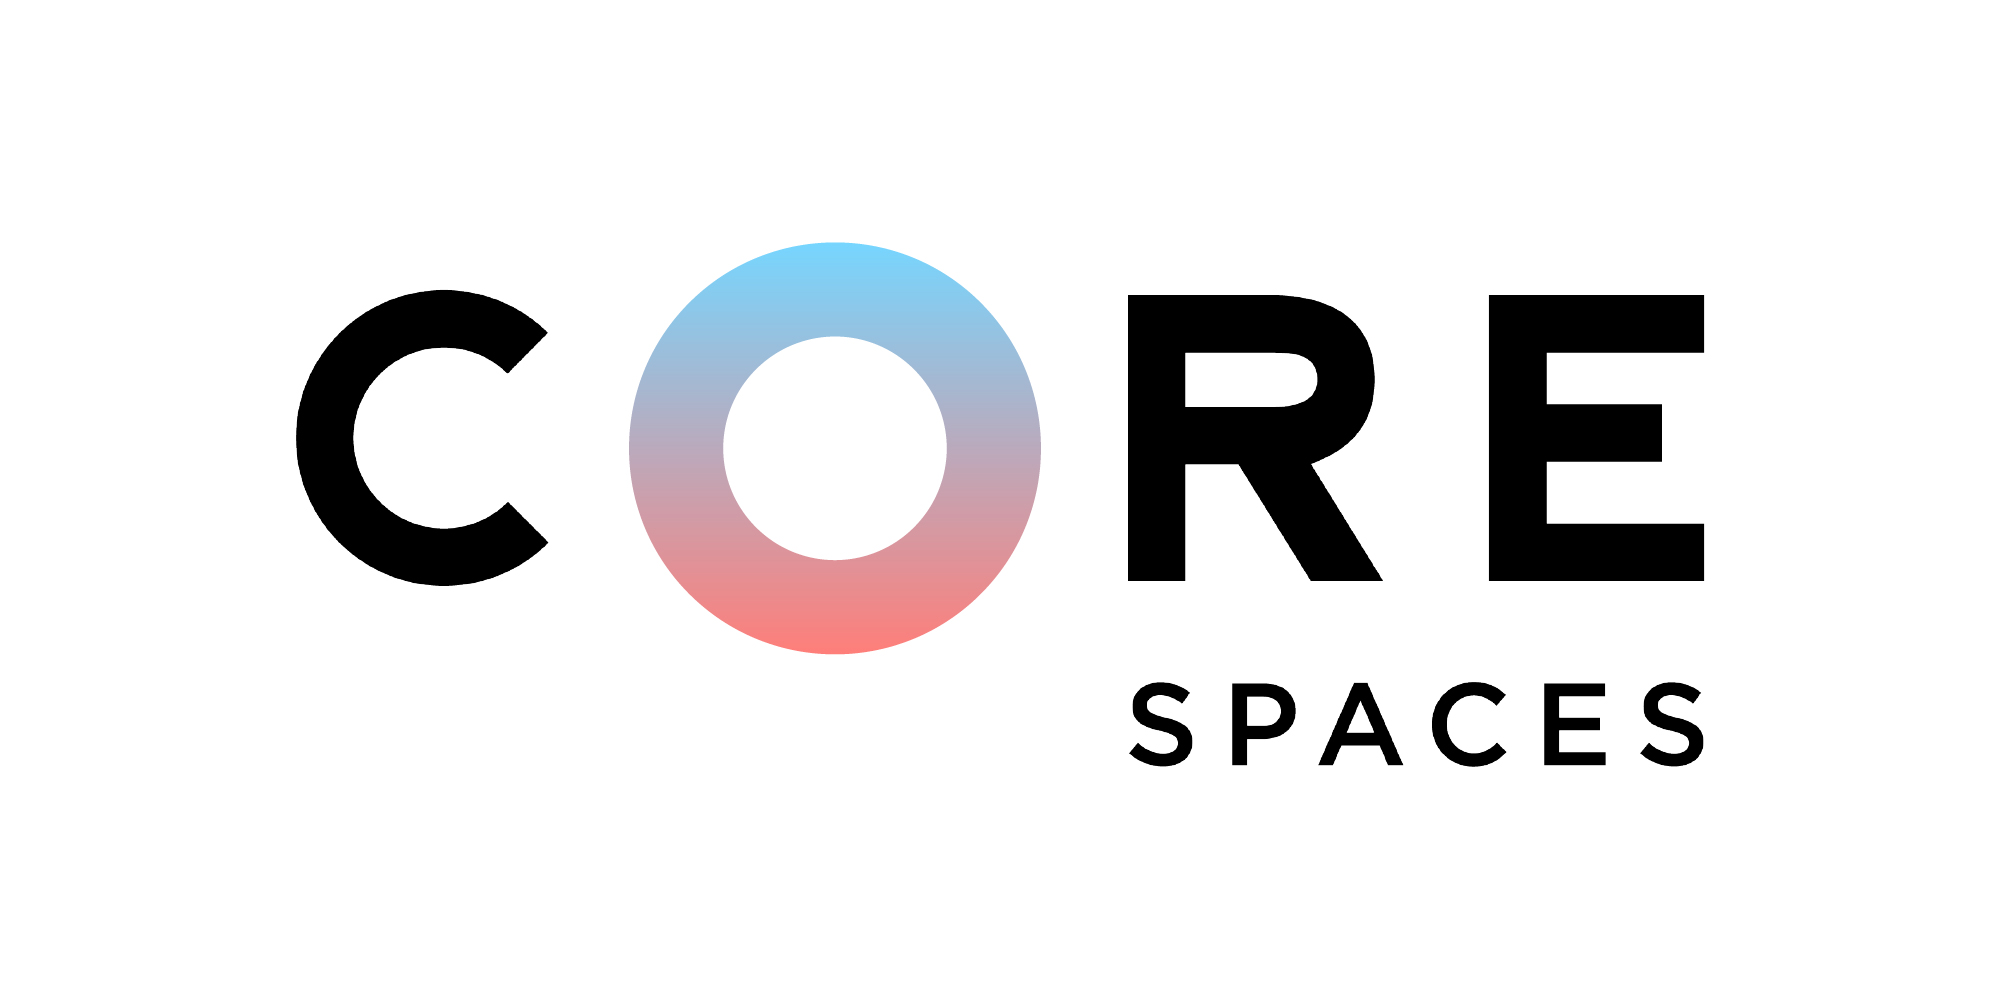 Core Spaces logo for Farm-To-Turntable event by Herban Produce of Chicago, Illinois.